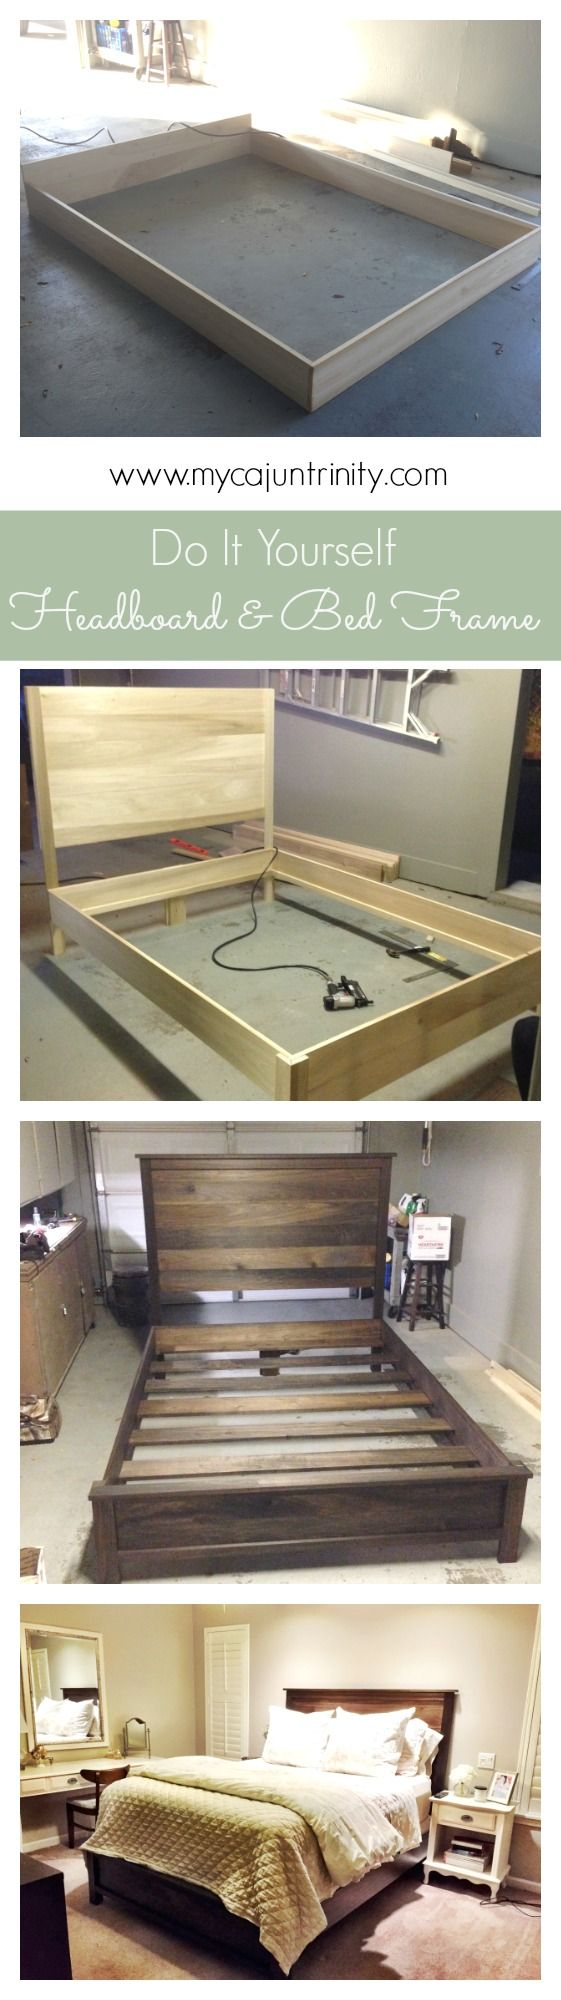 Step by step instructions on how to build a headboard and bed step by step instructions on how to build a headboard and bed frame jeuxipadfo Choice Image